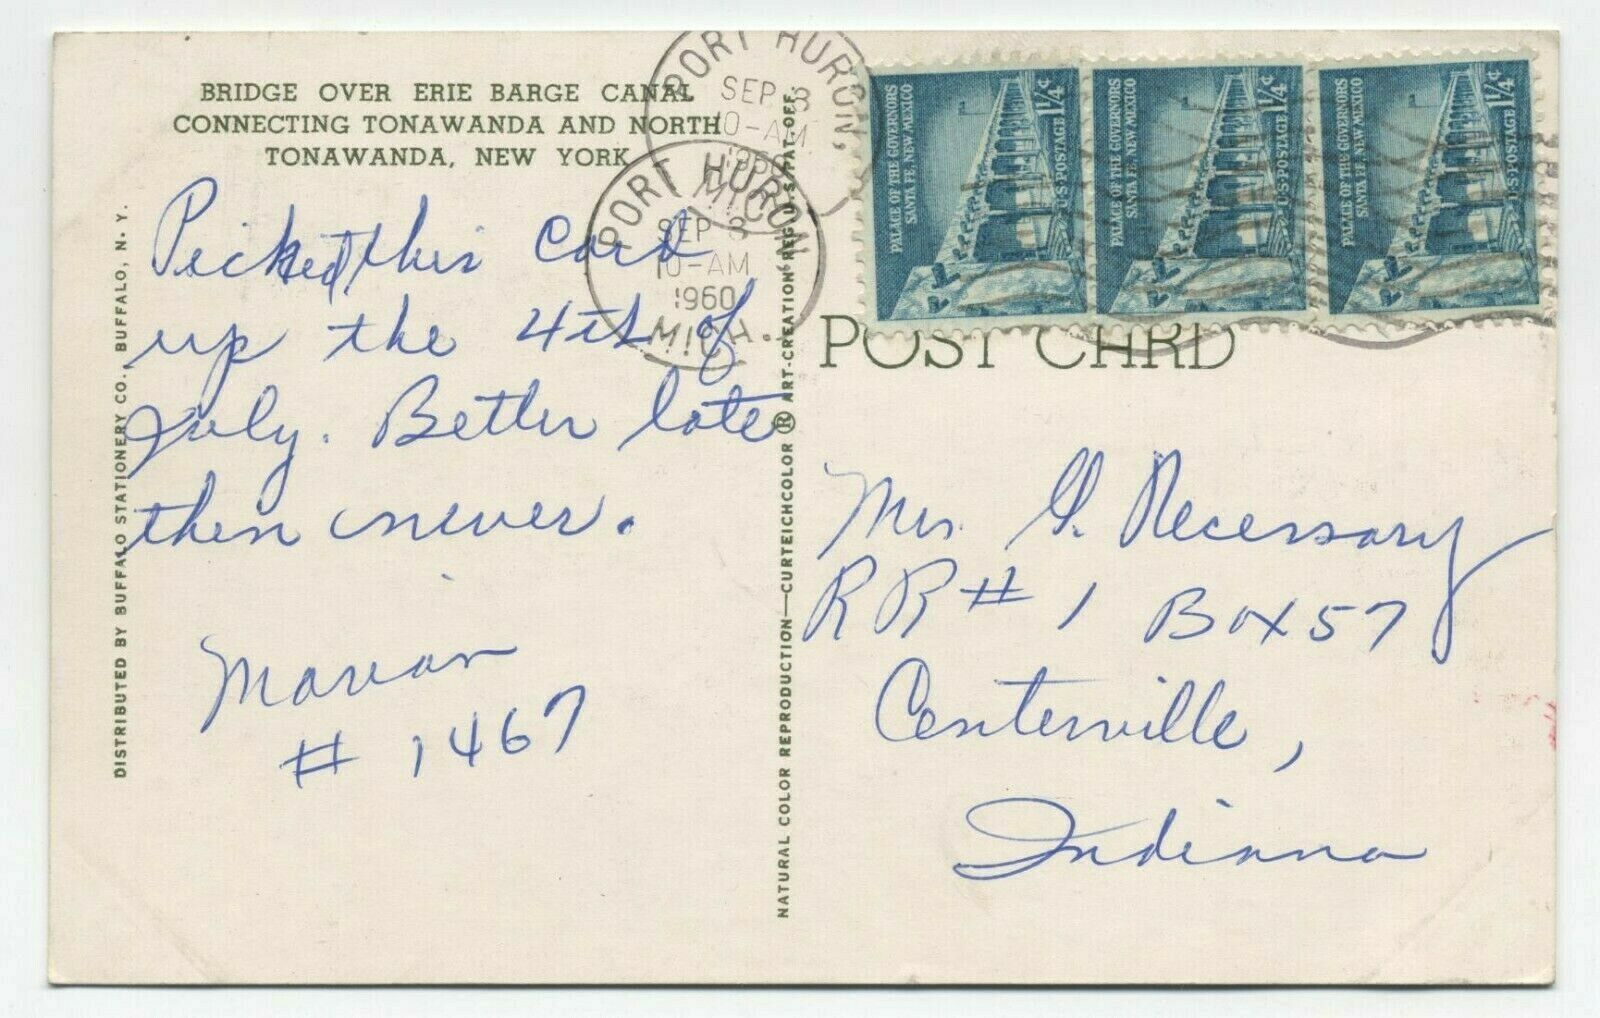 Bridge over Erie barge Canal connecting, postcard (1960) back.jpg